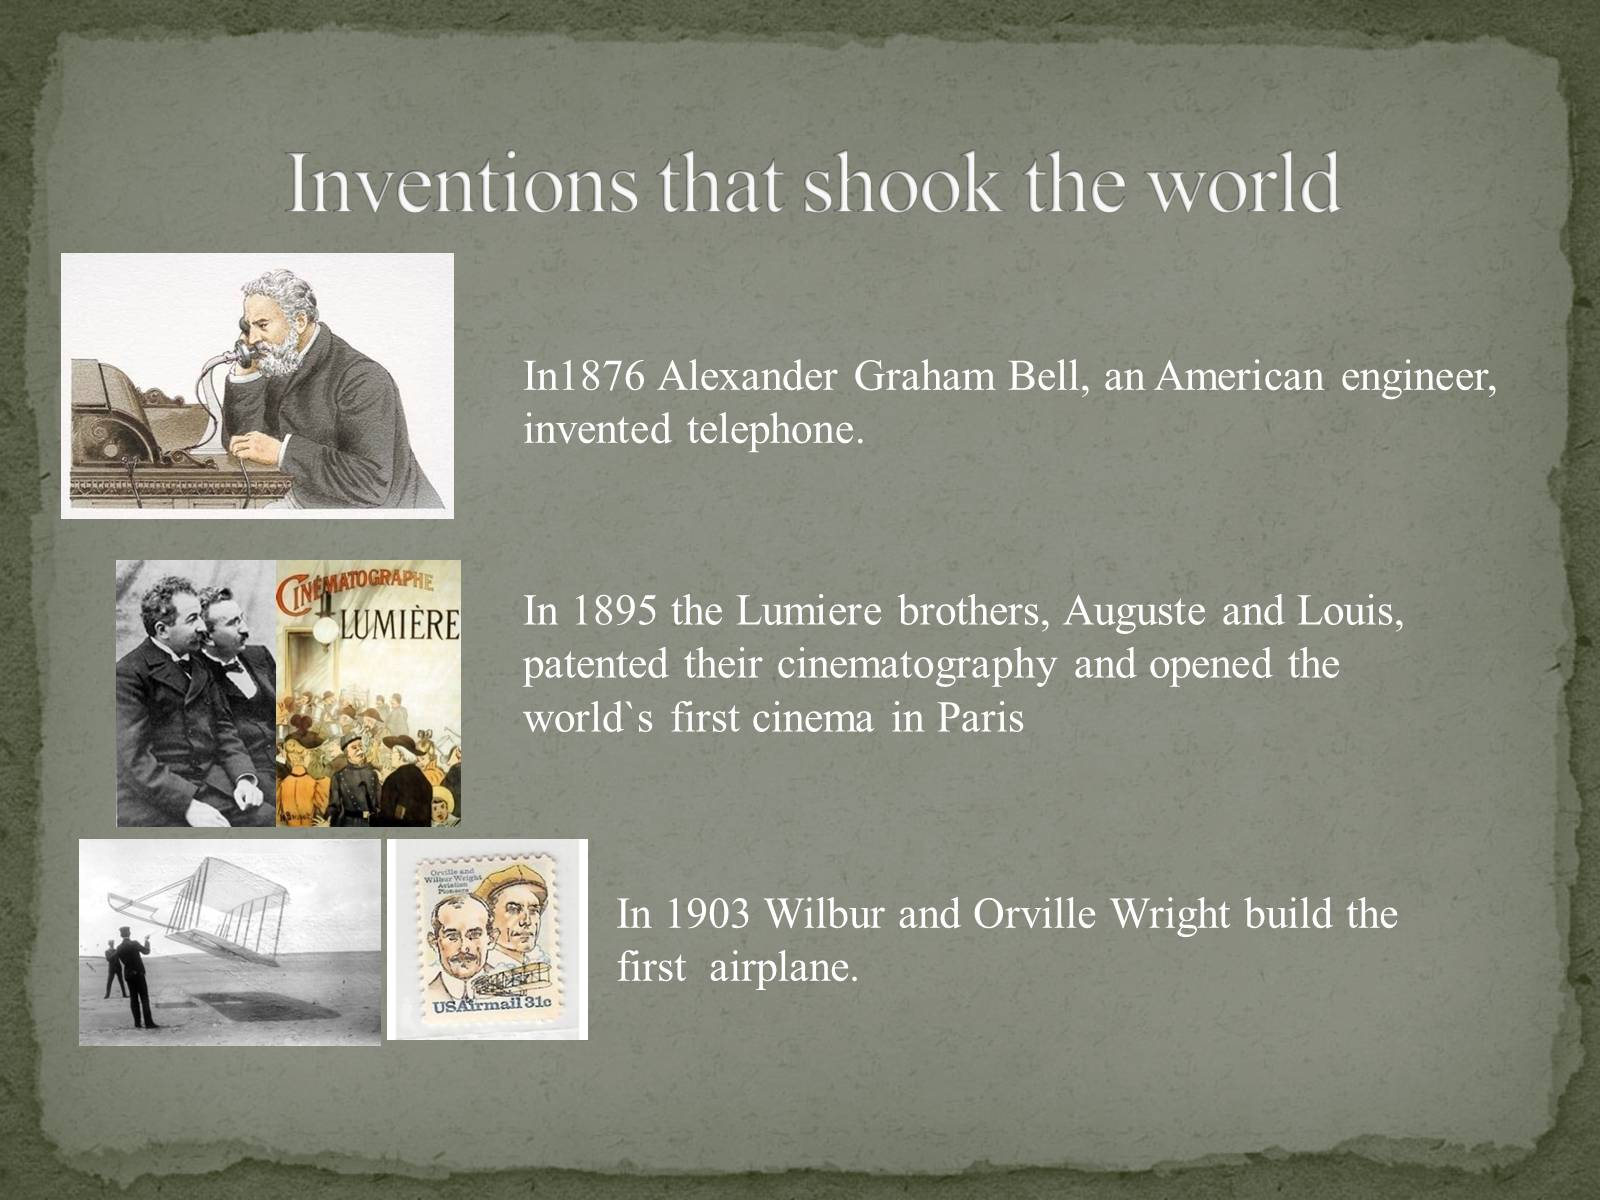 Презентація на тему «The Greatest inventors and invetentions John Logie Baird invented television» - Слайд #3